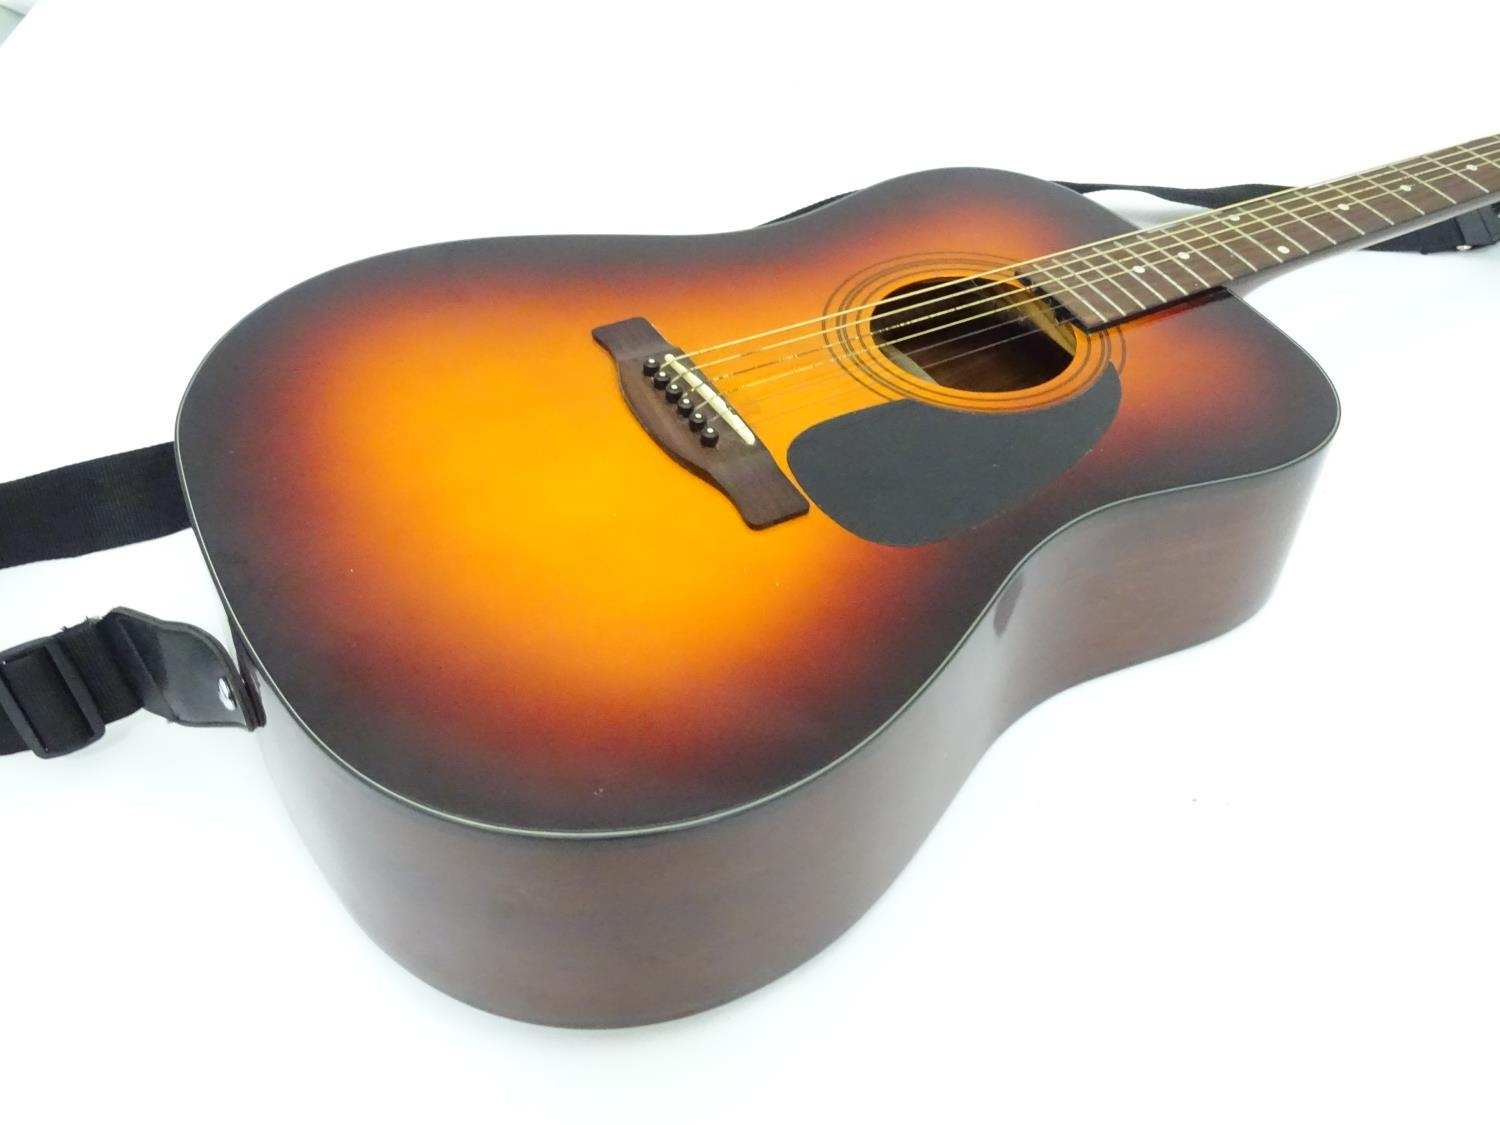 A Fender CD-60 SB acoustic guitar Please Note - we do not make reference to the condition of lots - Image 3 of 5